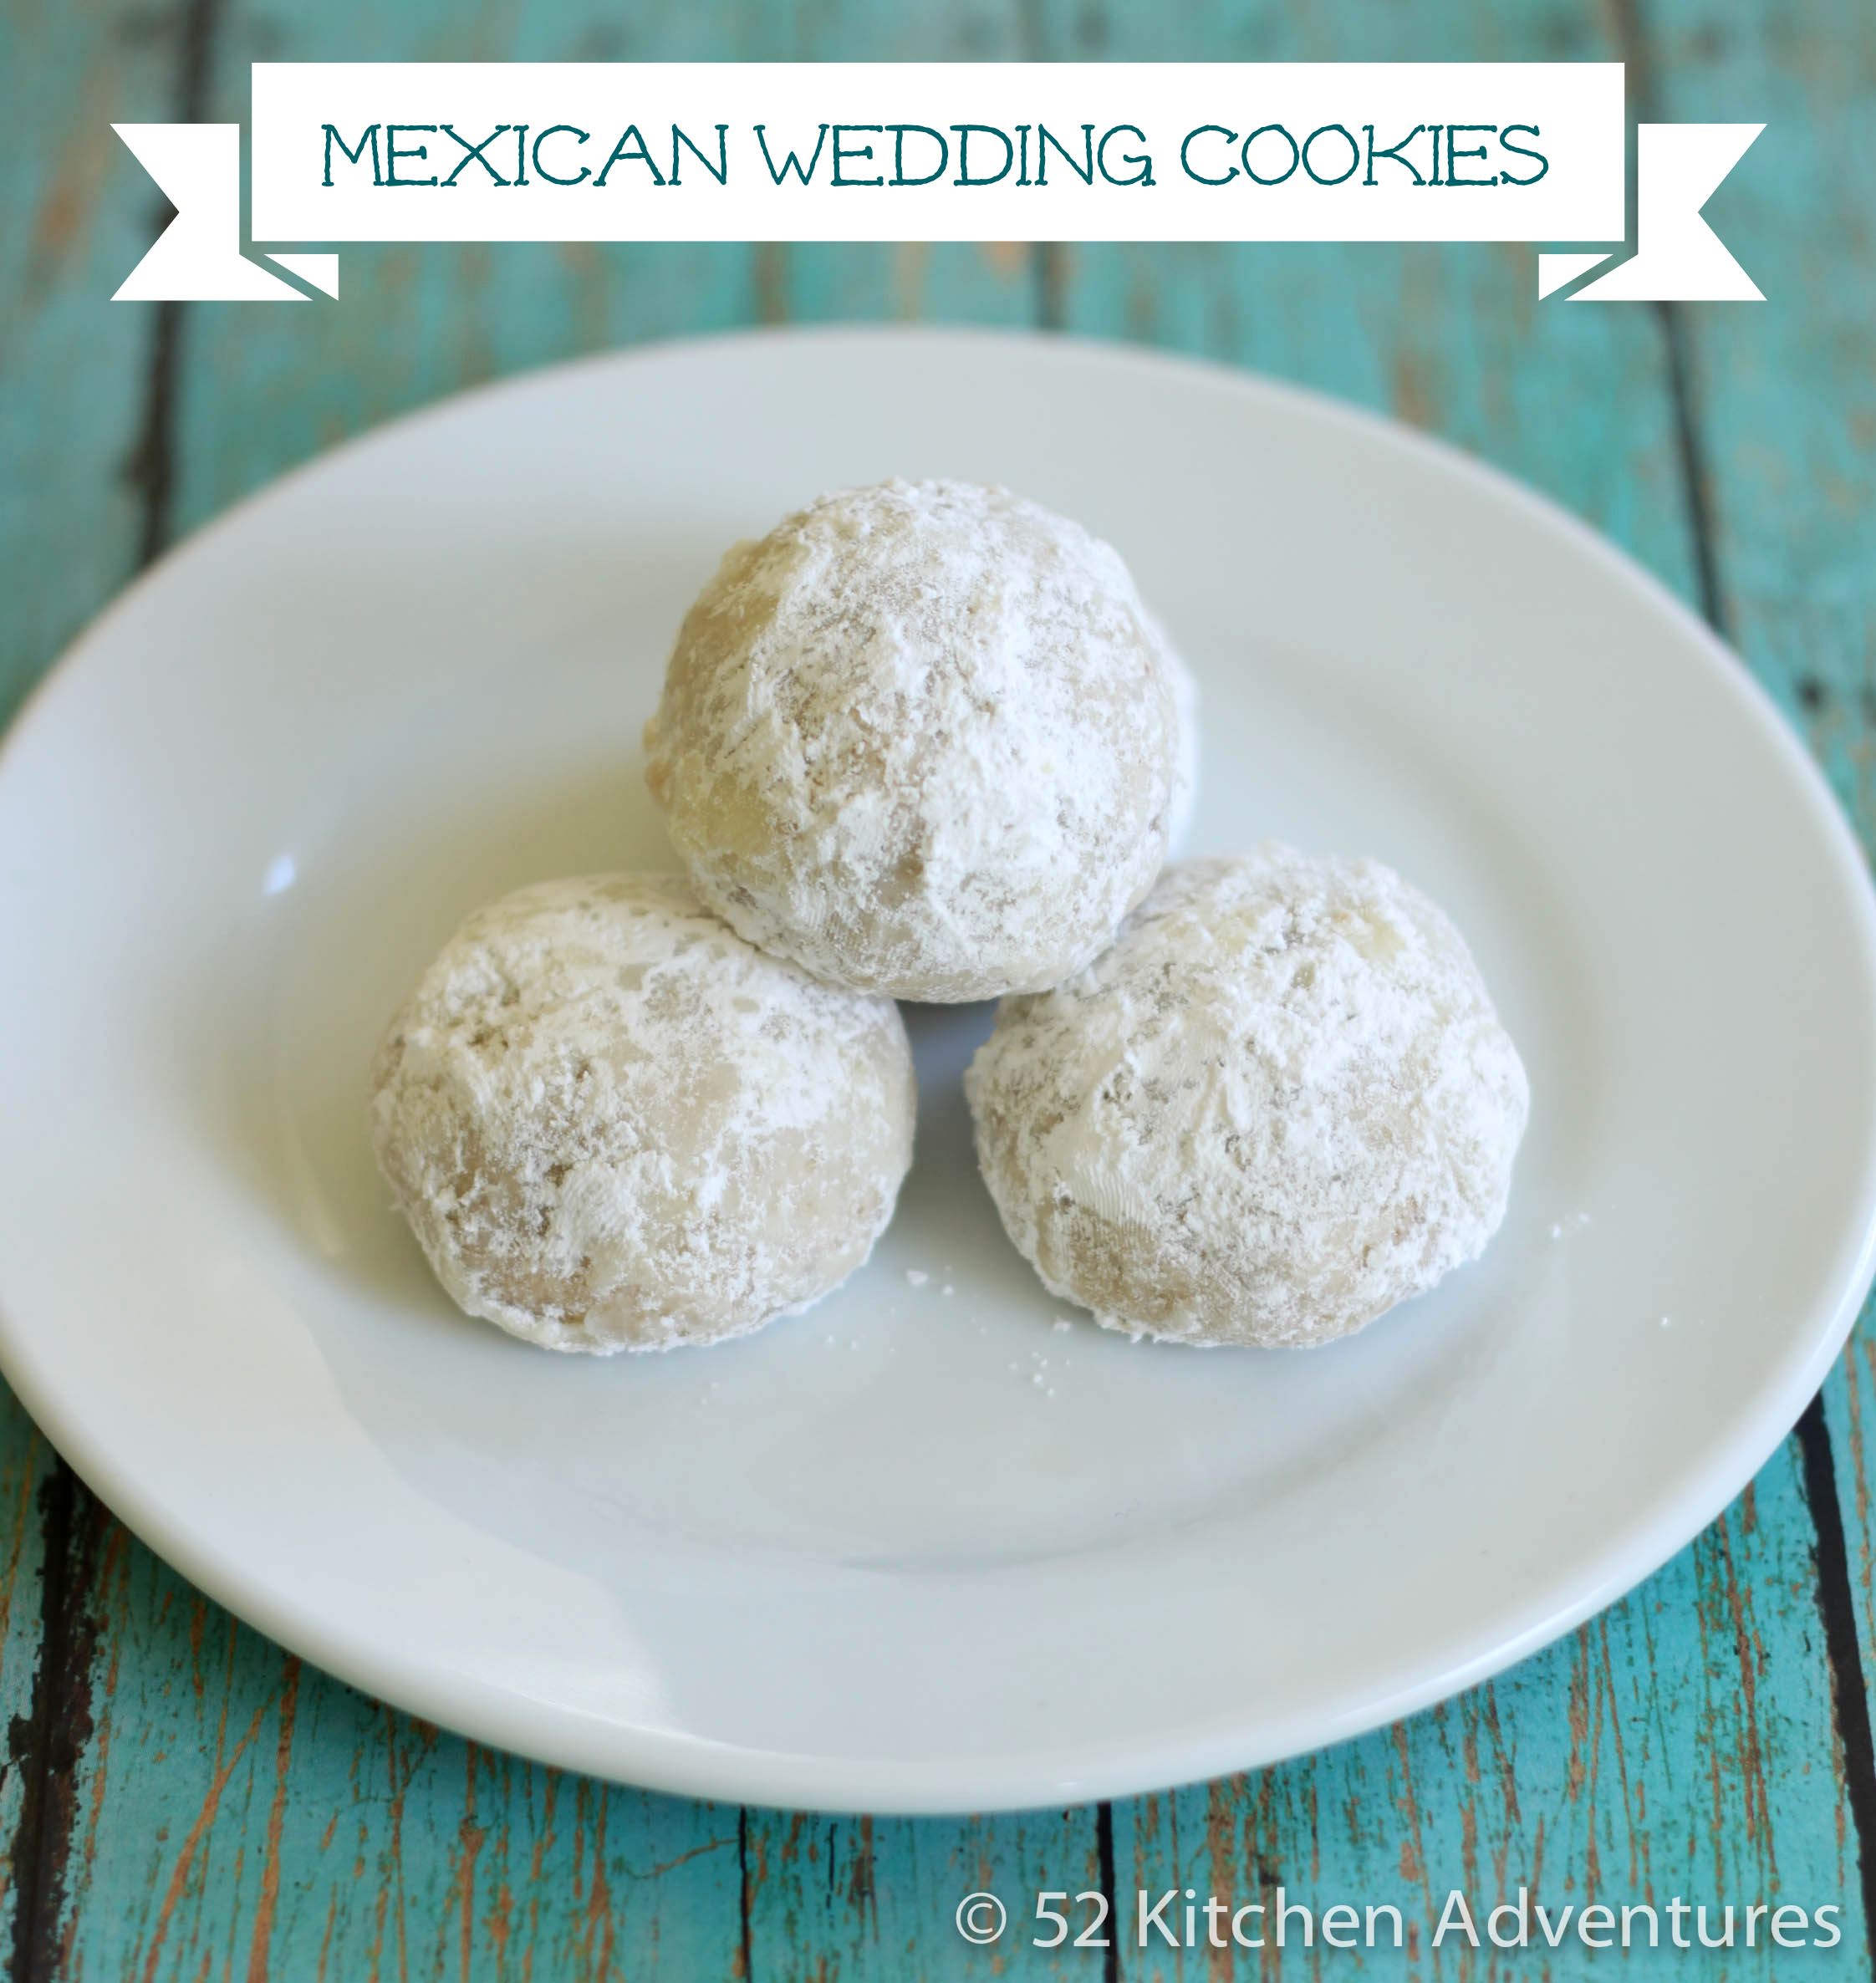 Mexican Wedding Cookies | 52 Kitchen Adventures